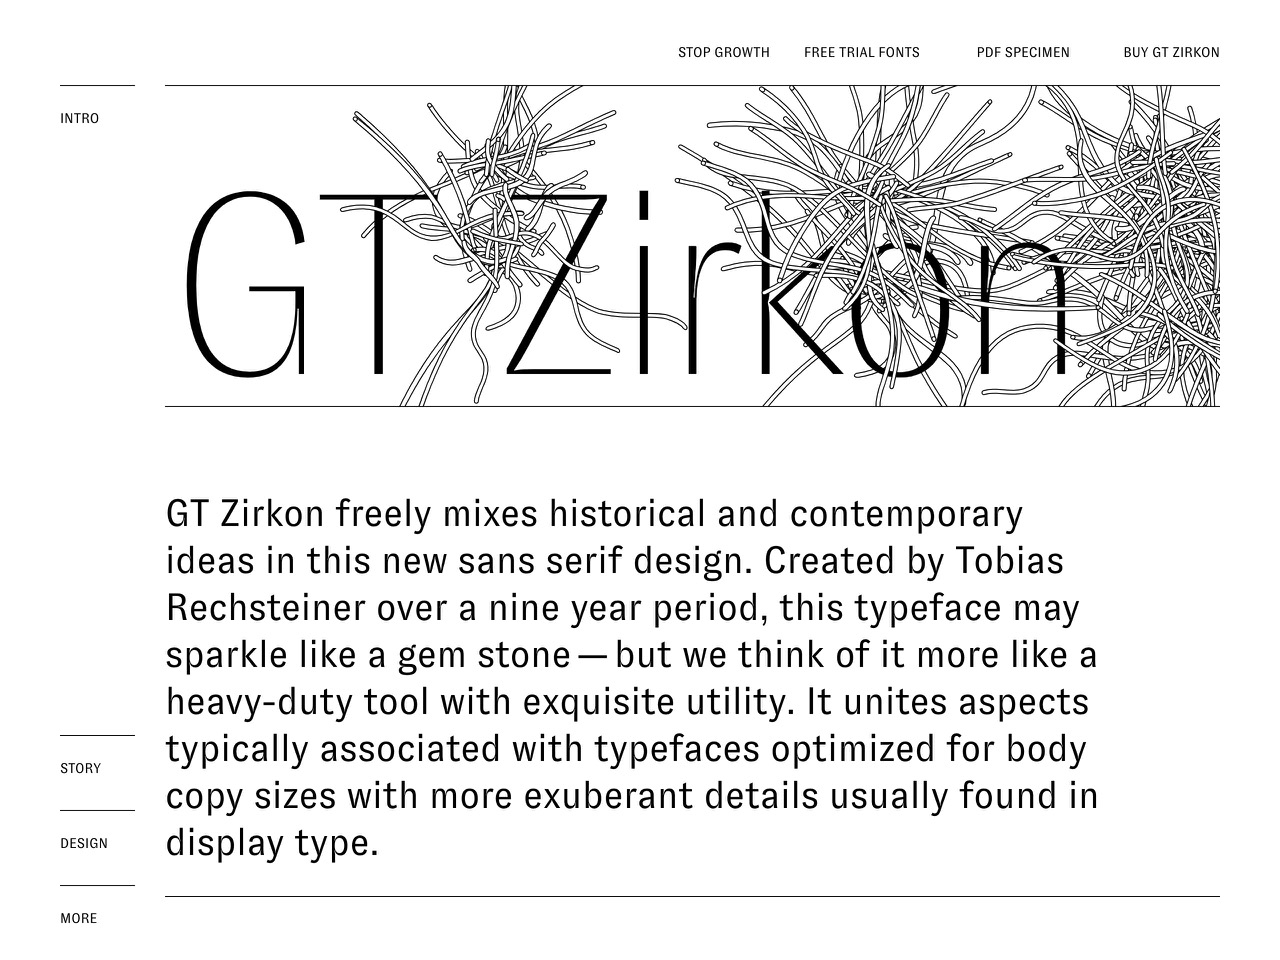 Gt zirkon   download free trial fonts